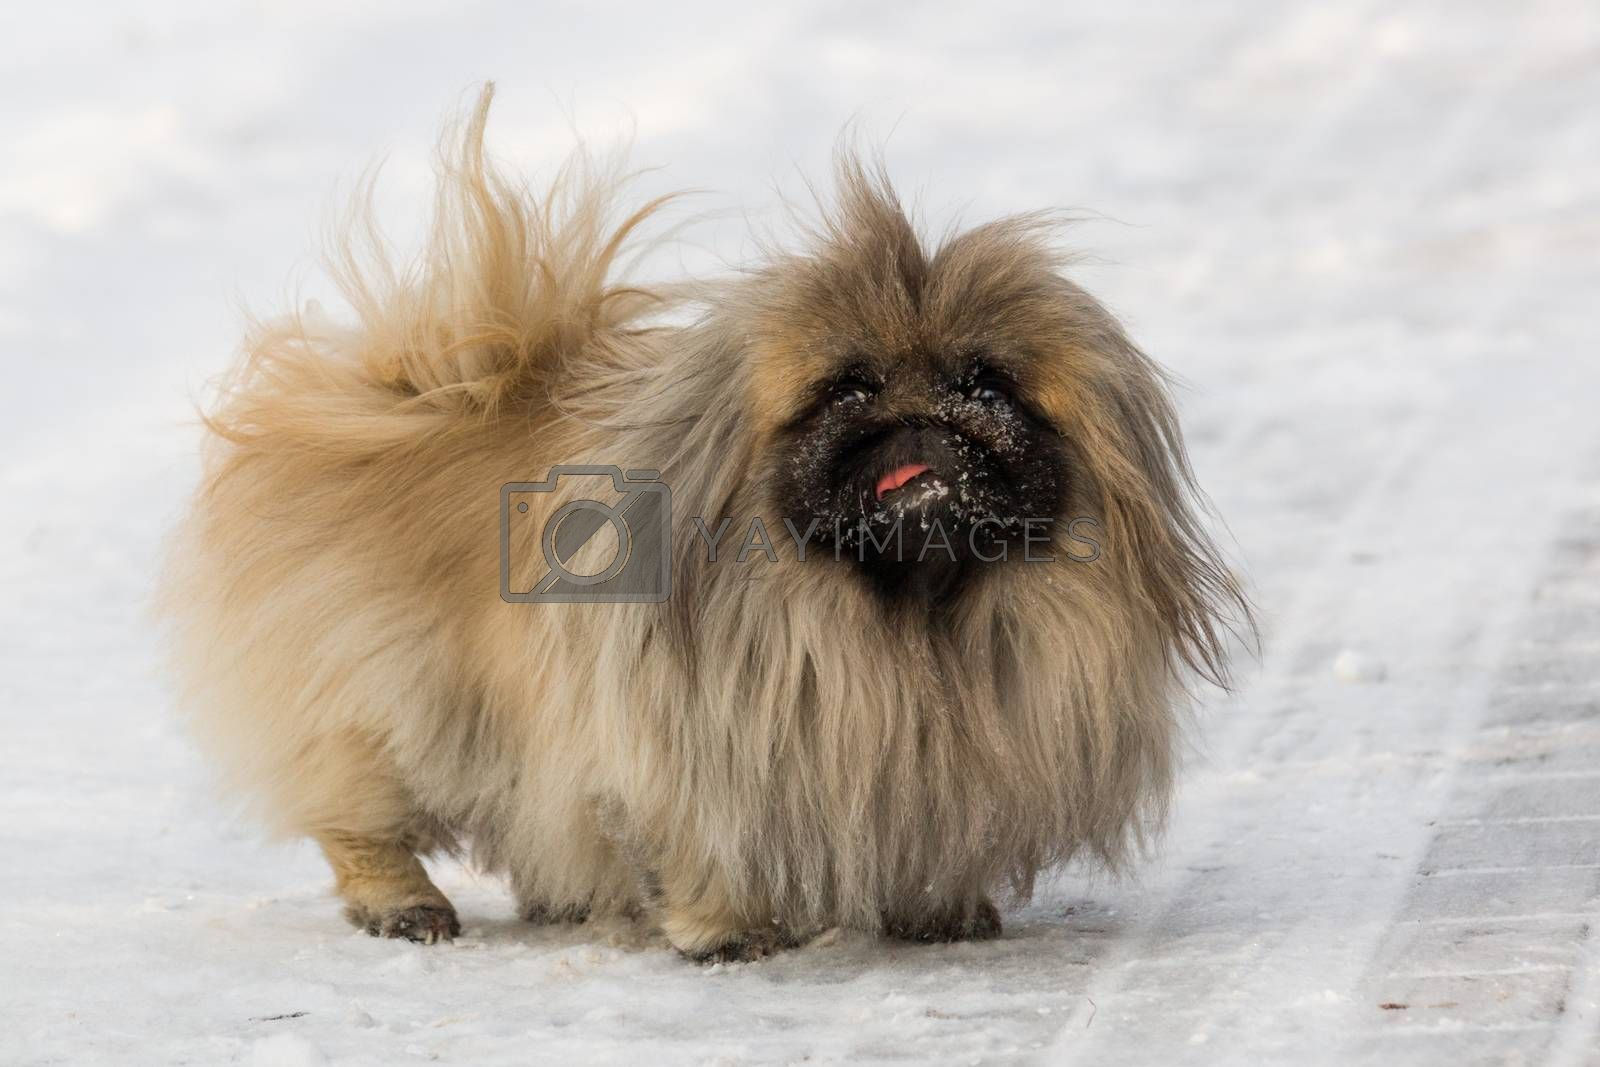 The photo shows a dog in the snow